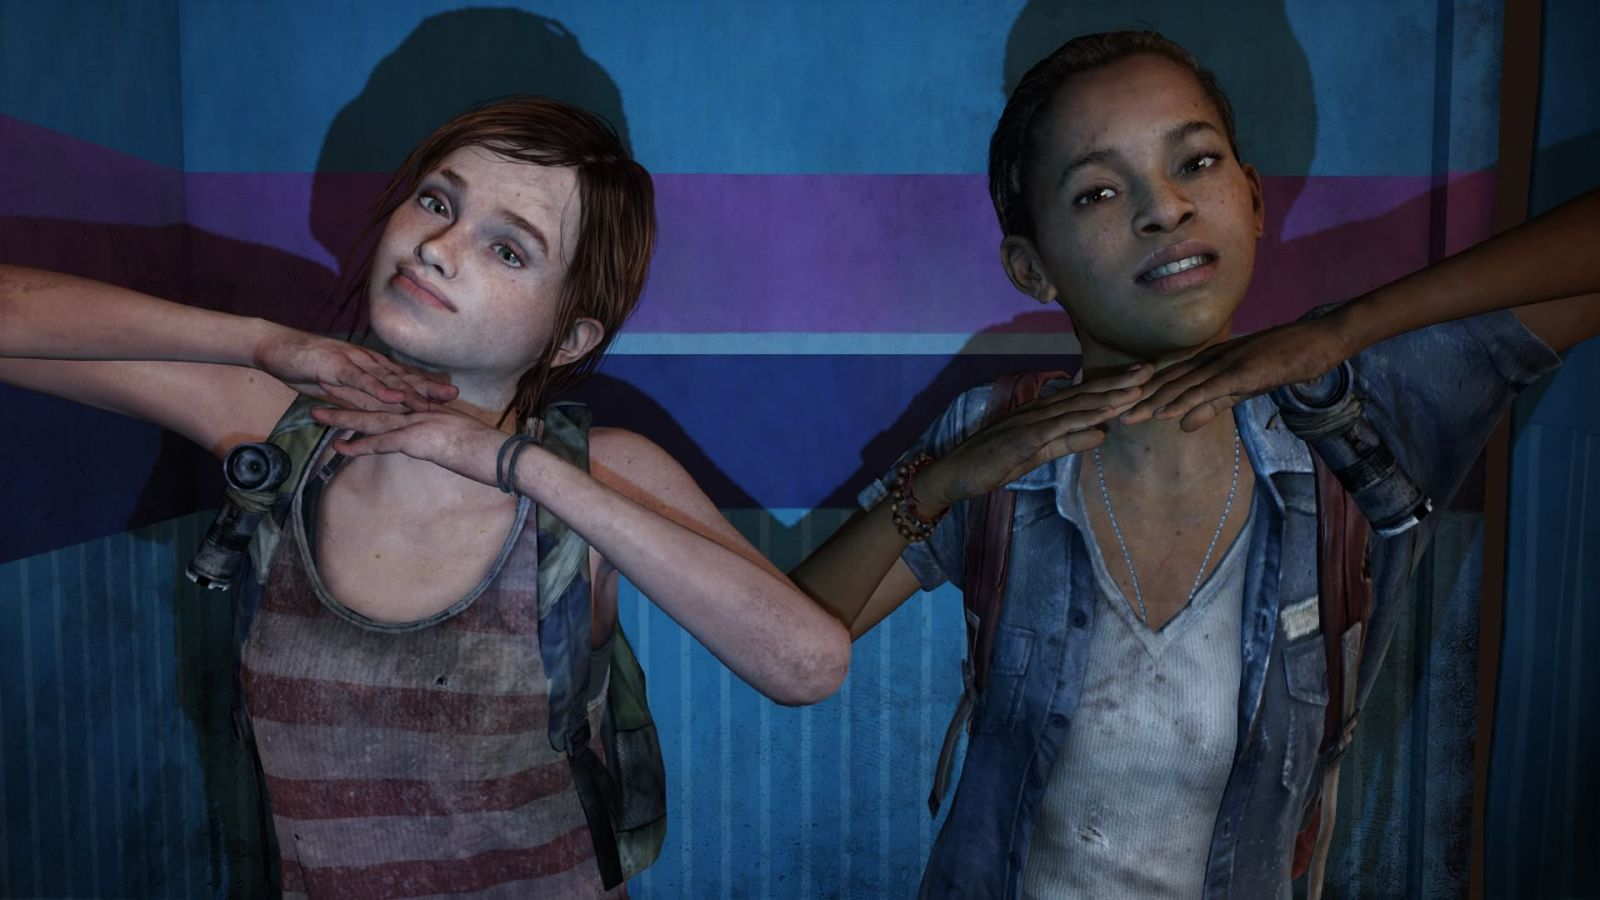 Fonte: Naughty Dog / Sony Interactive Entertainment